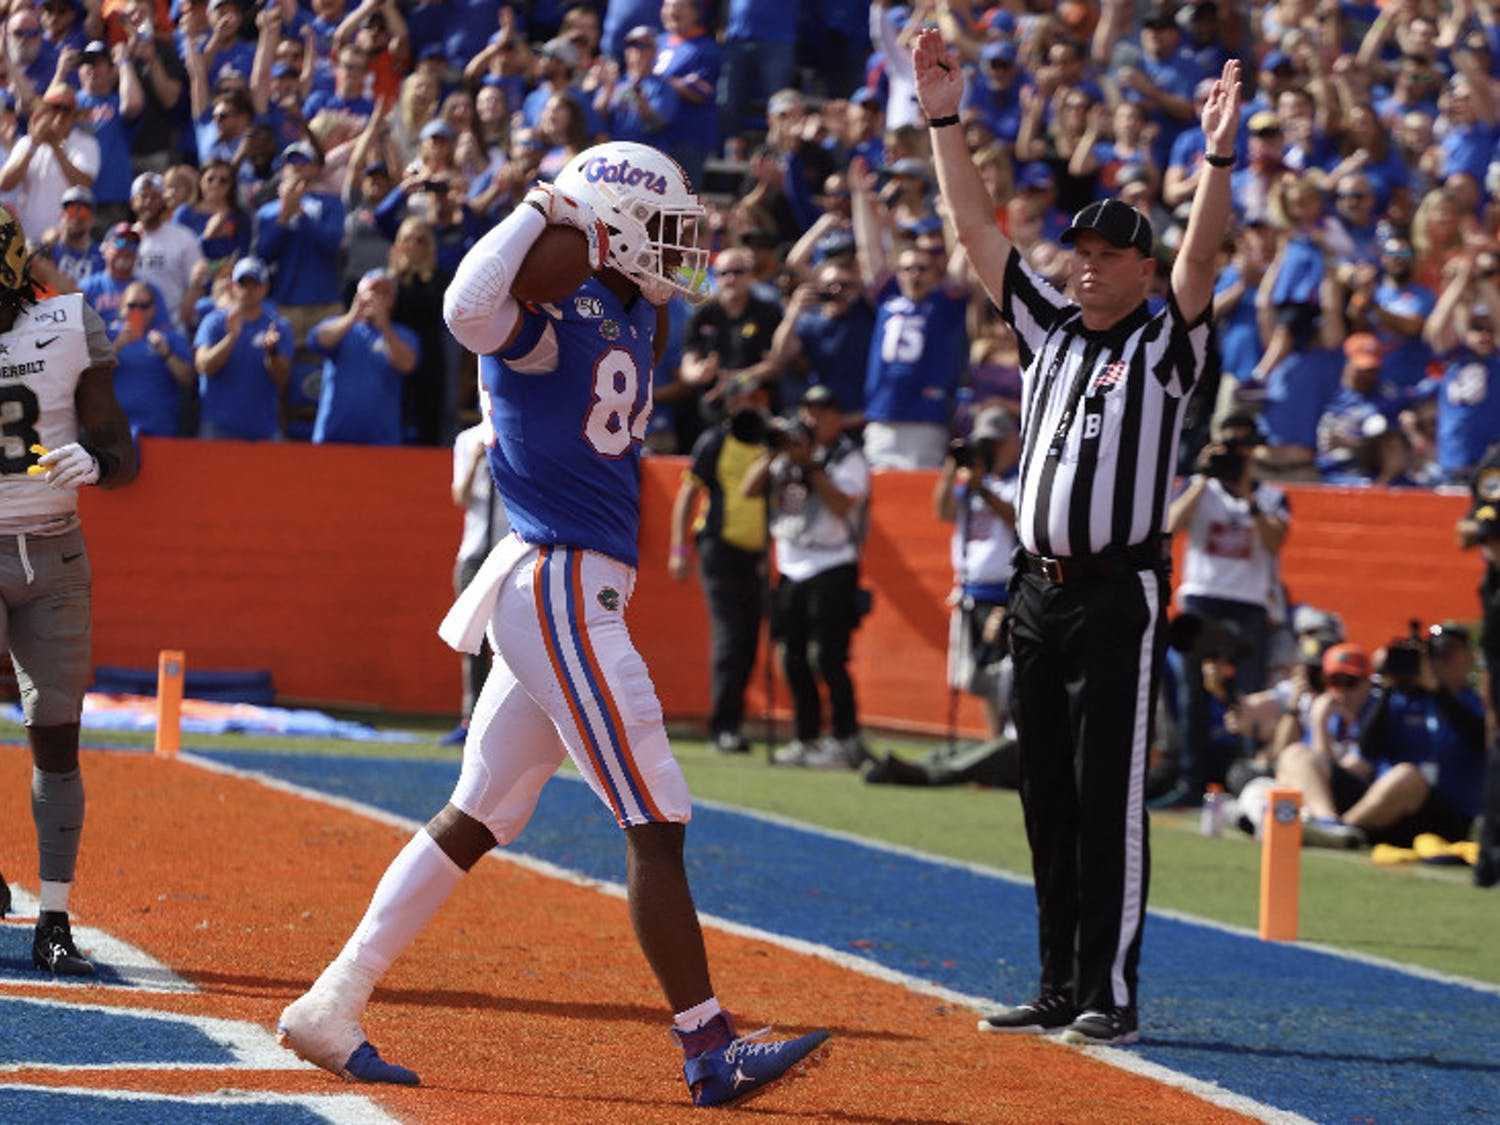 Florida tight end Kyle Pitts celebrates into the endzone on 11/30/19 against Vanderbilt. Pitts scored a touchdown and hauled in 139 receiving yards Saturday night.